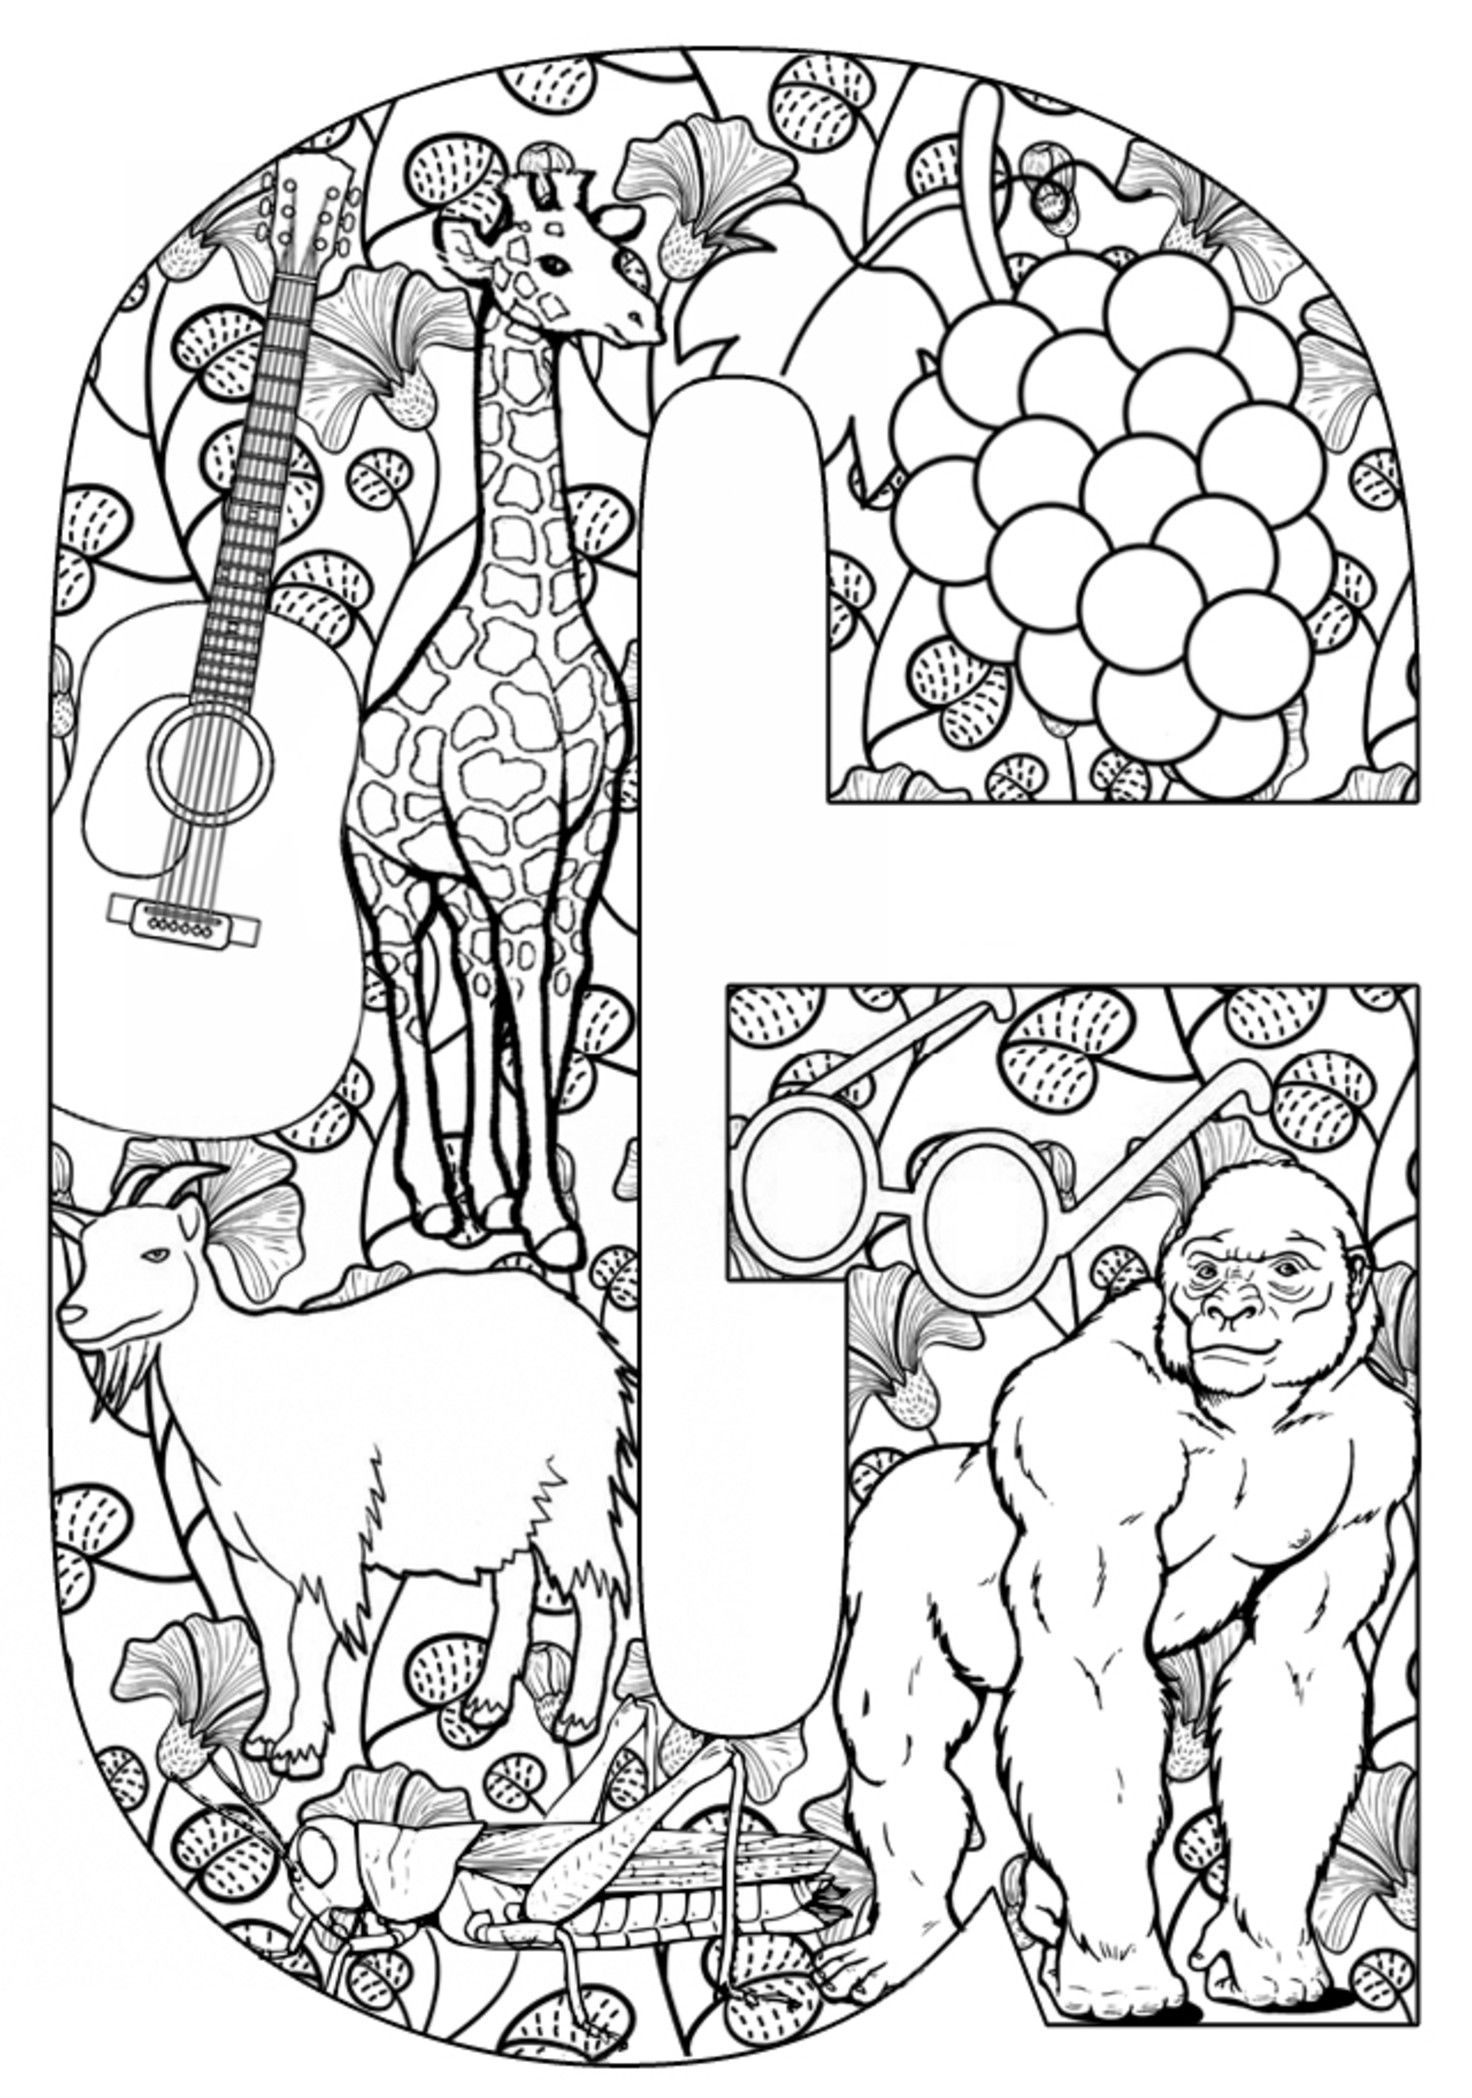 G Coloring Pages Printable Coloring Pages Coloring Letters Coloring Book Pages